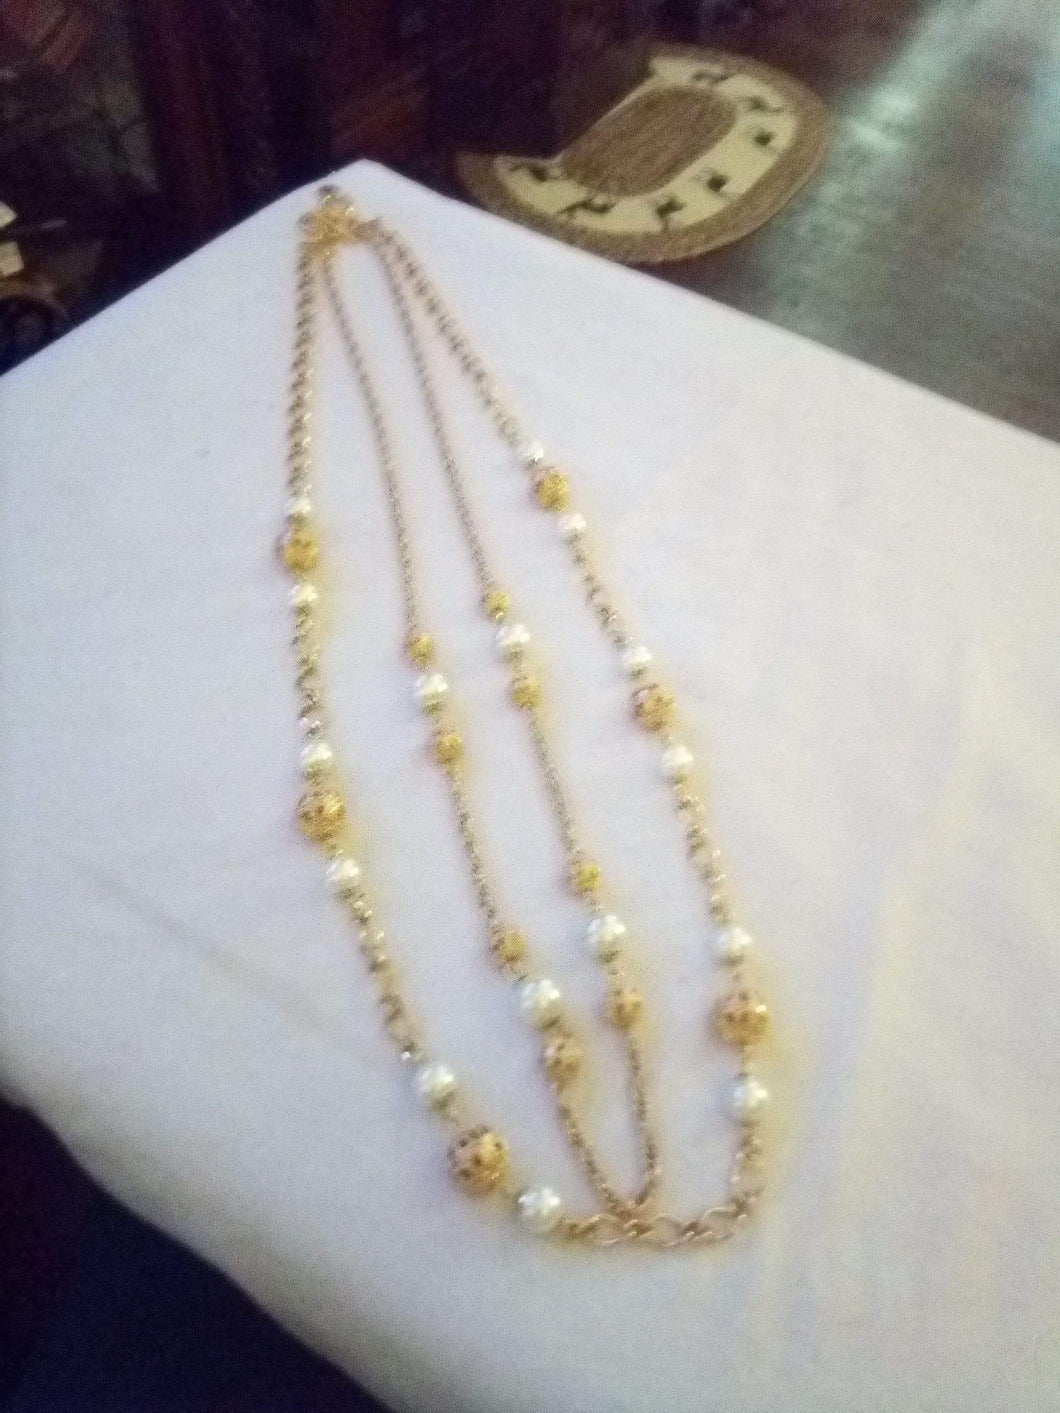 Talbot marked beautiful gold tone pearl like long necklace - B&P'sringsnthings